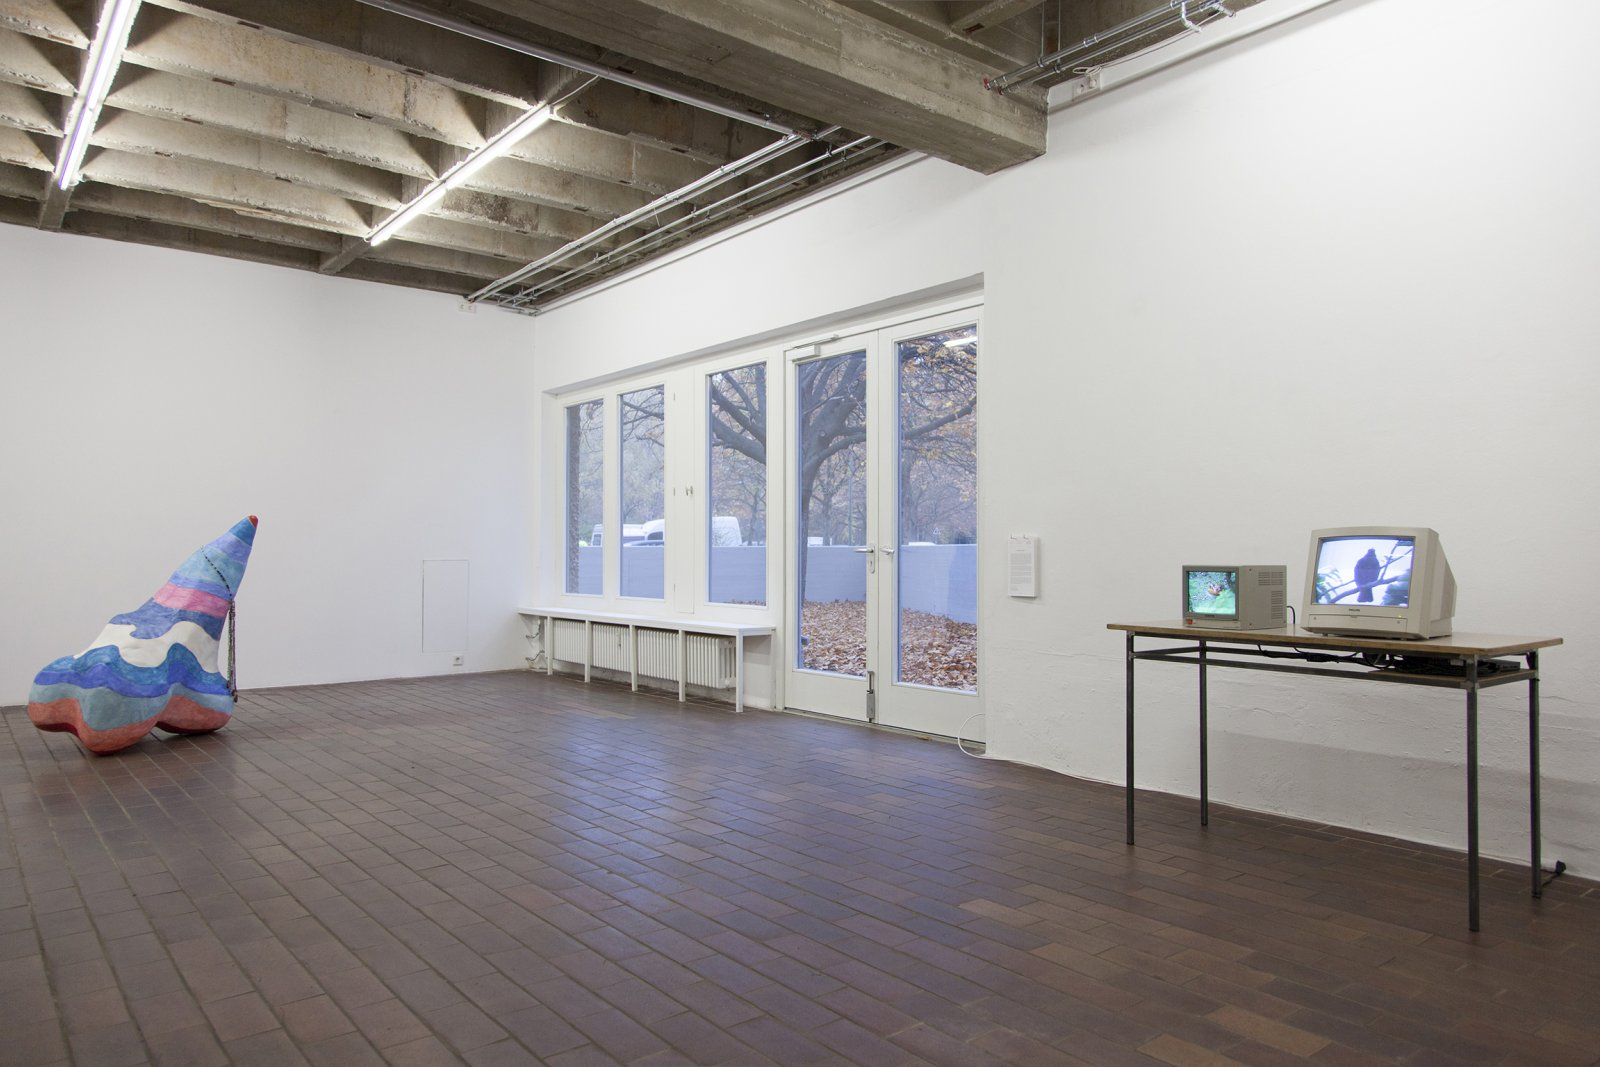 ​​Christina Mackie, installation view, ​And Bird, PRAXES, Berlin, 2014​ by Christina Mackie